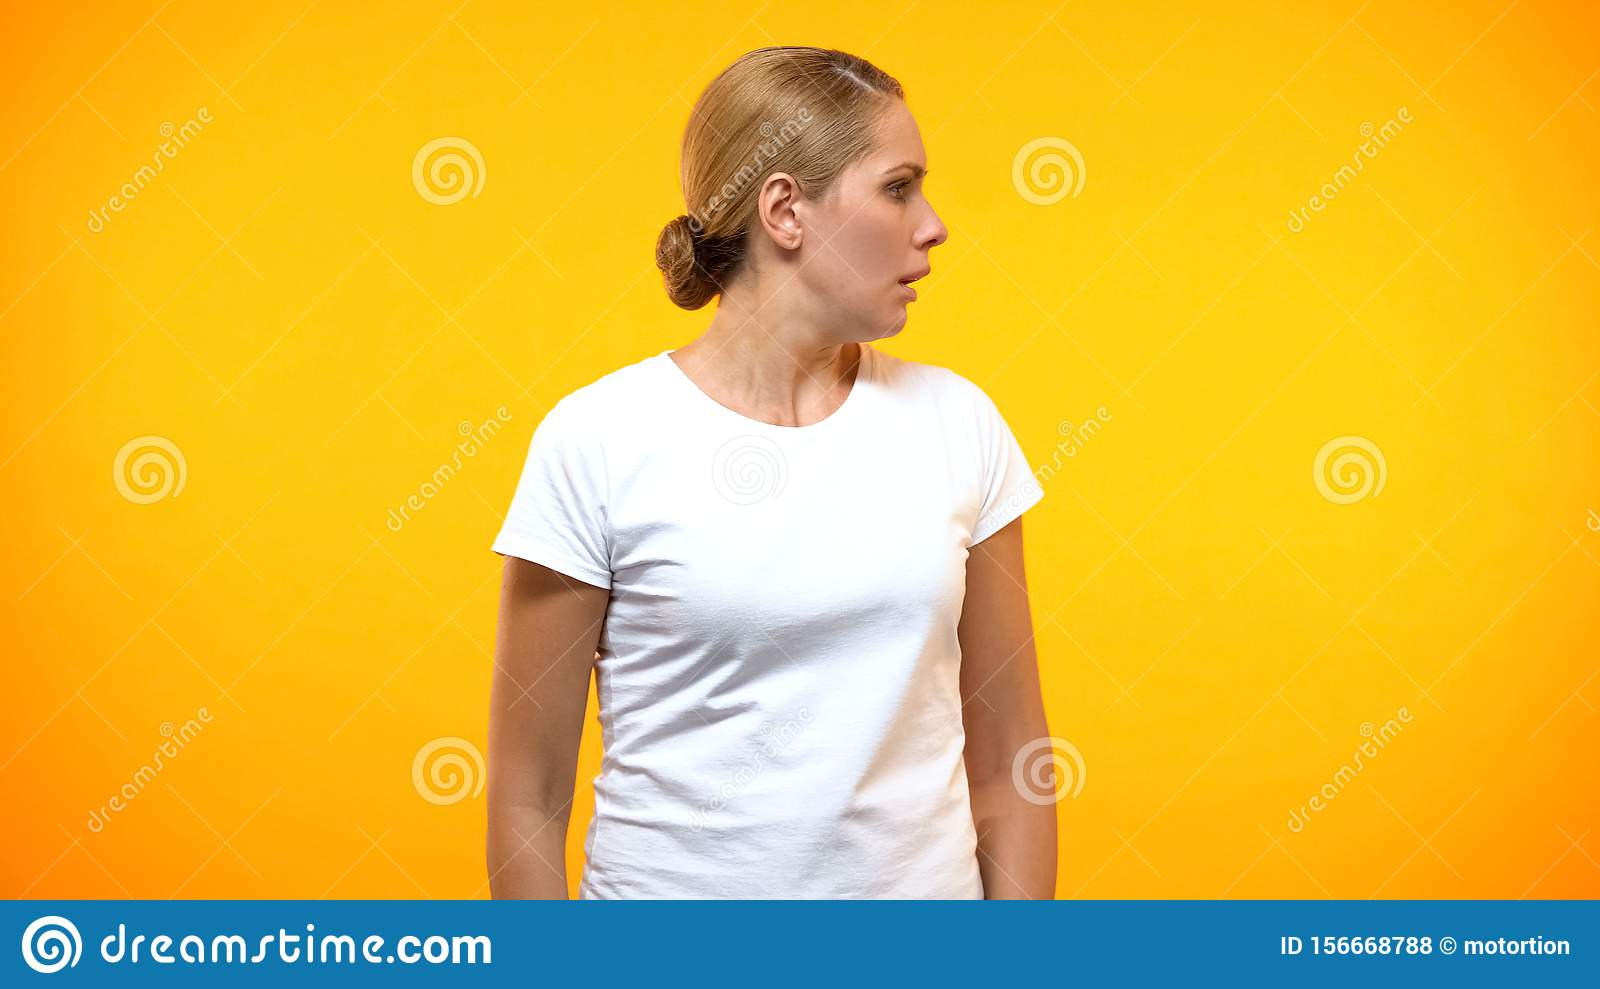 Frightened woman looking right on bright background, fear expression, anxiety